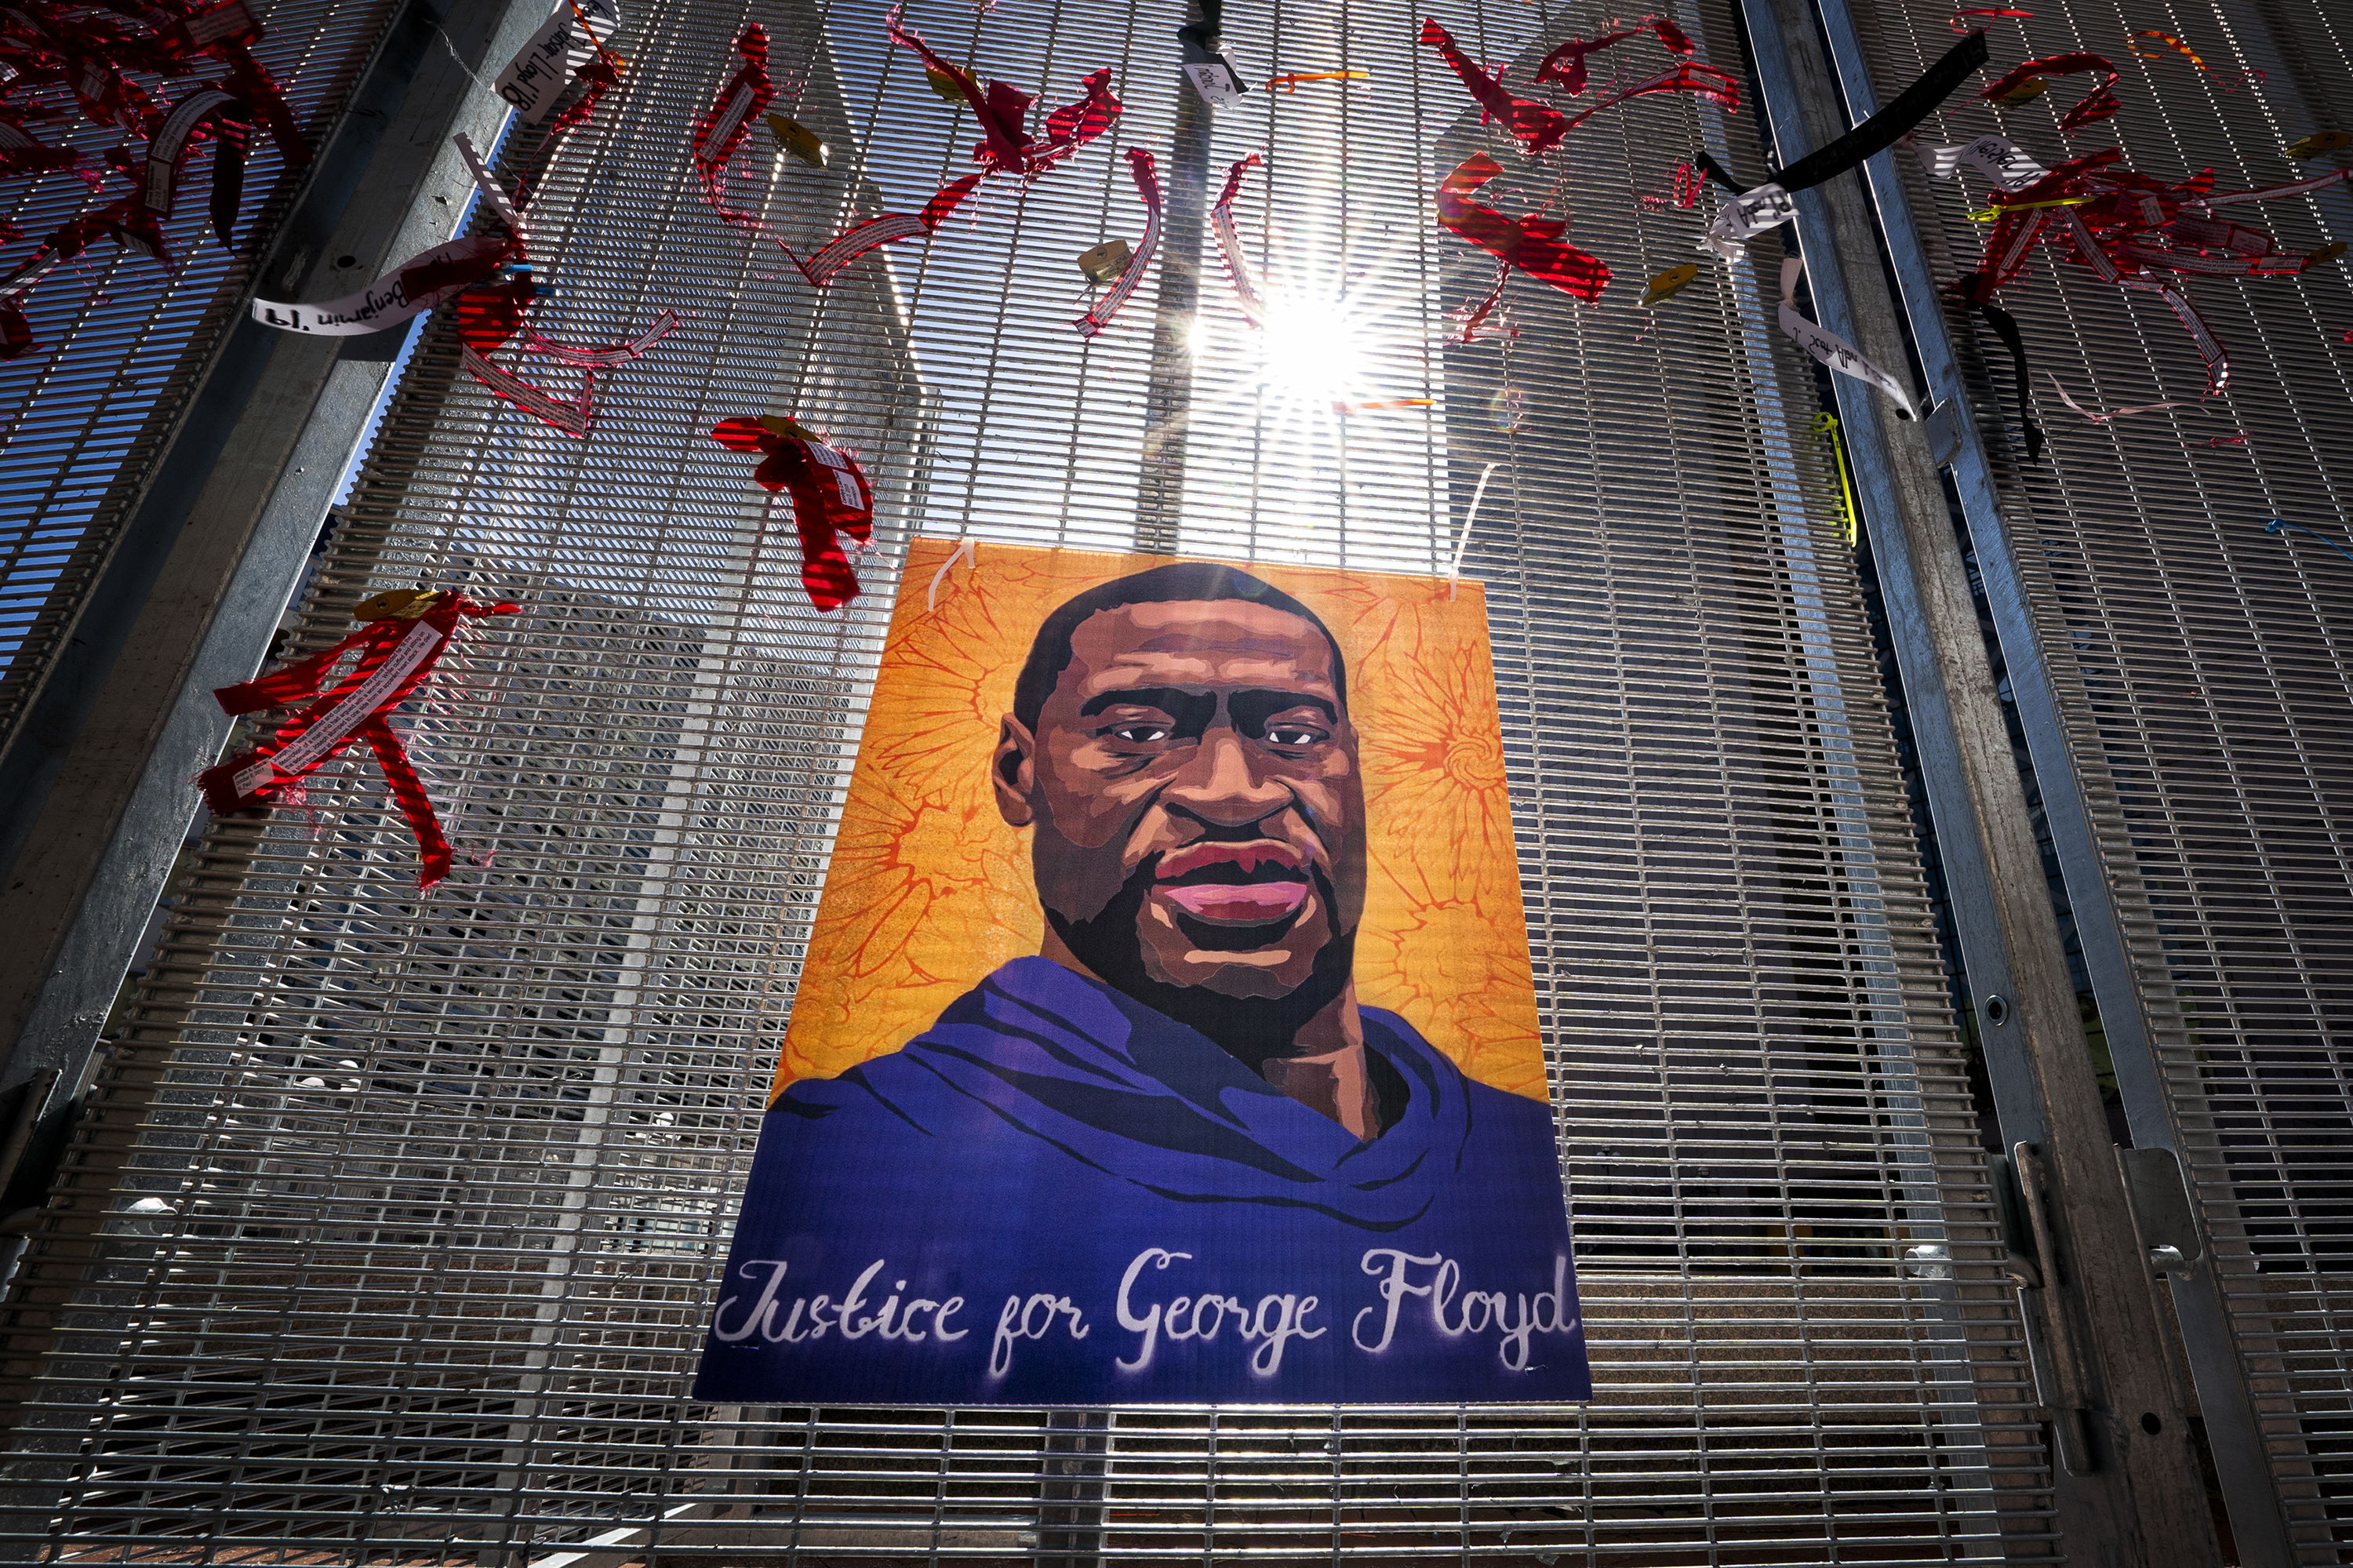 """A painting of George Floyd reading """"justice for George Floyd"""" hangs on a fence made of tight mesh. Red ribbons have been tied around the painting; these flap in the breeze, as the sun shines above the entire scene."""